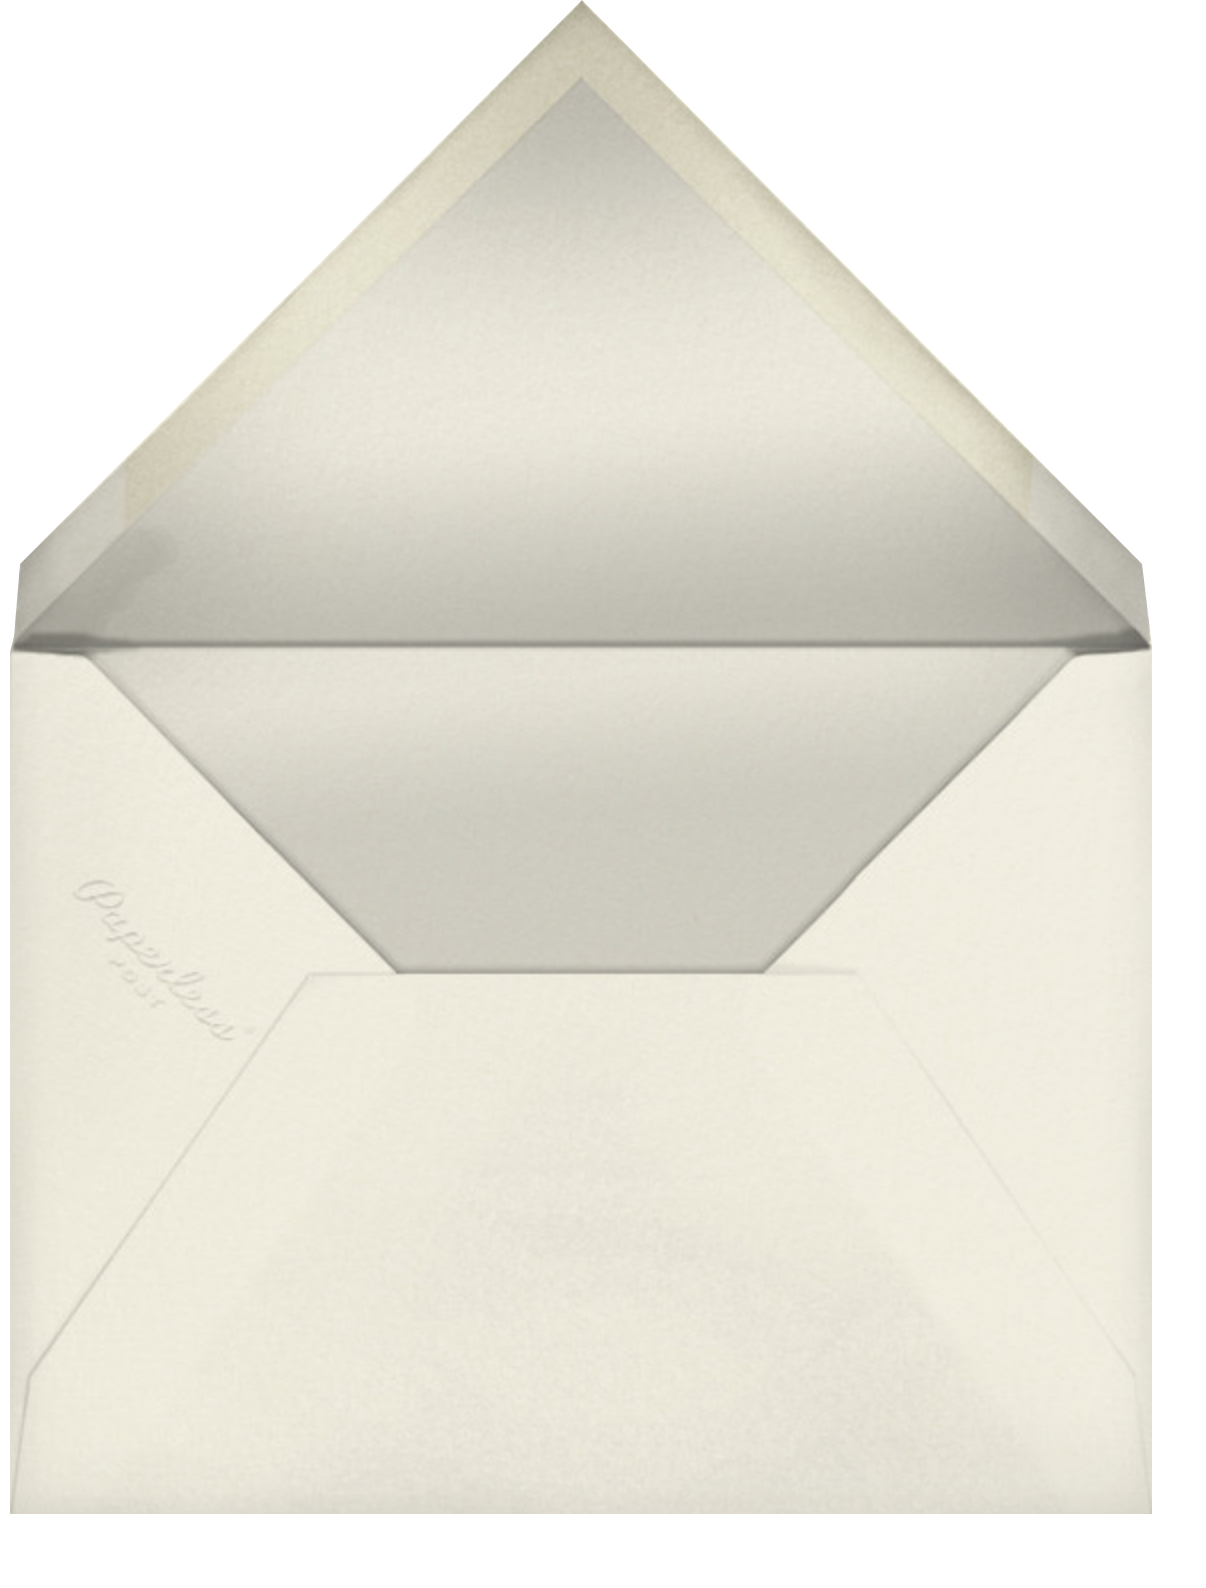 Crete (Blue) - Paperless Post - Free birthday eCards - envelope back